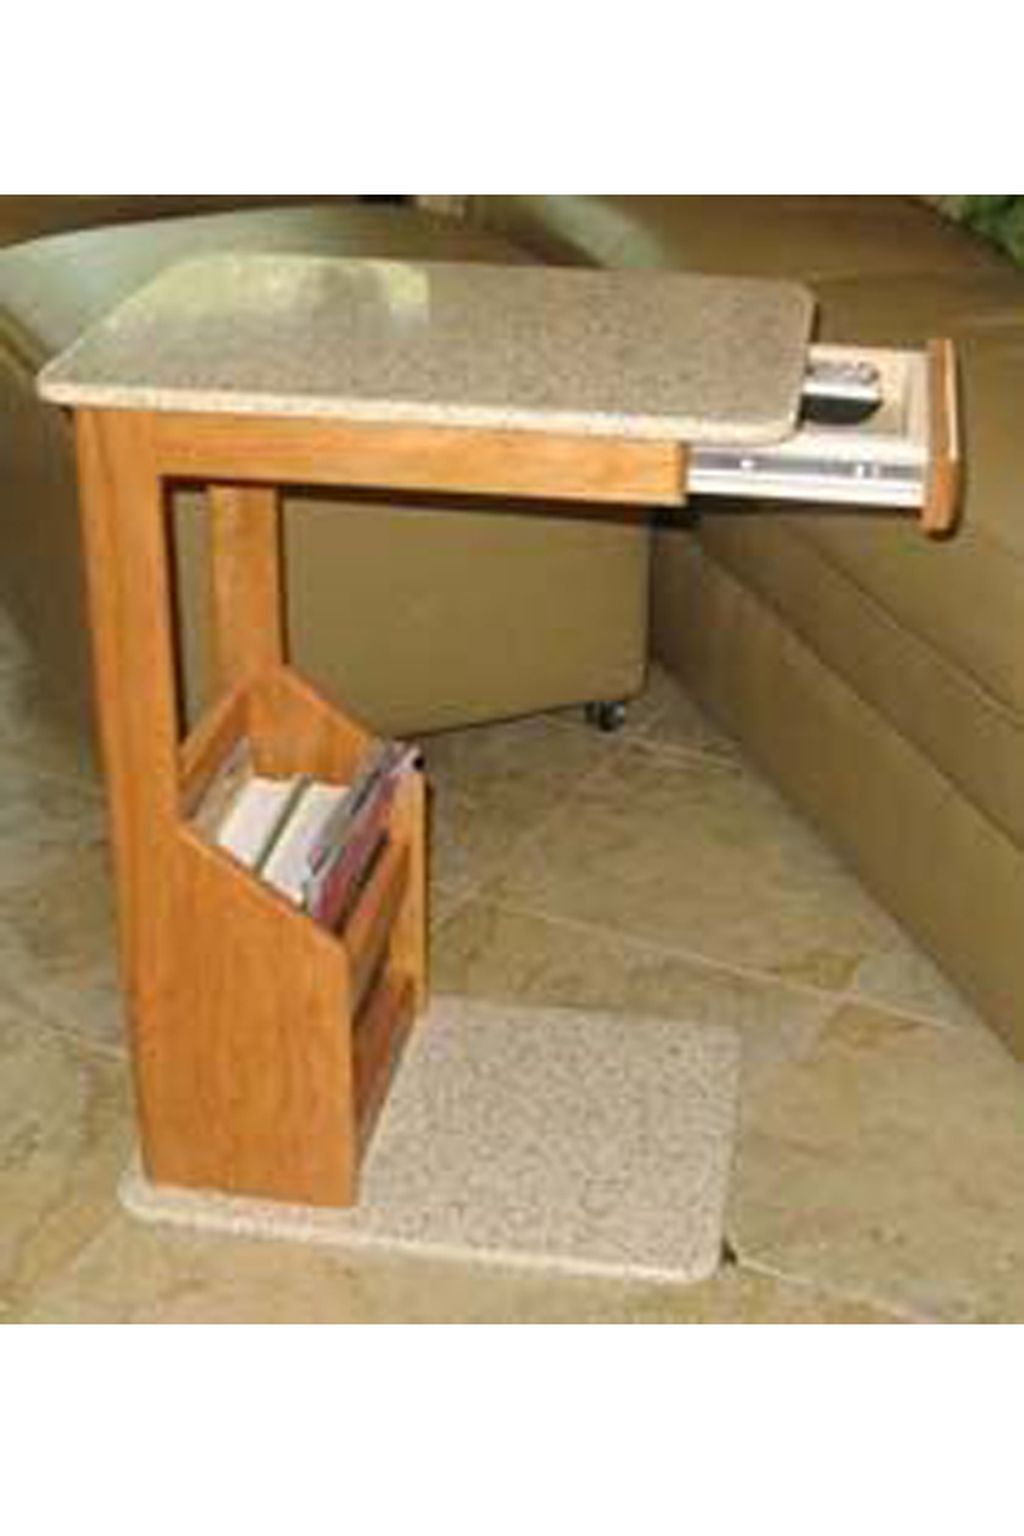 Best Wood Furniture Ideas With For Laptop To Have 28